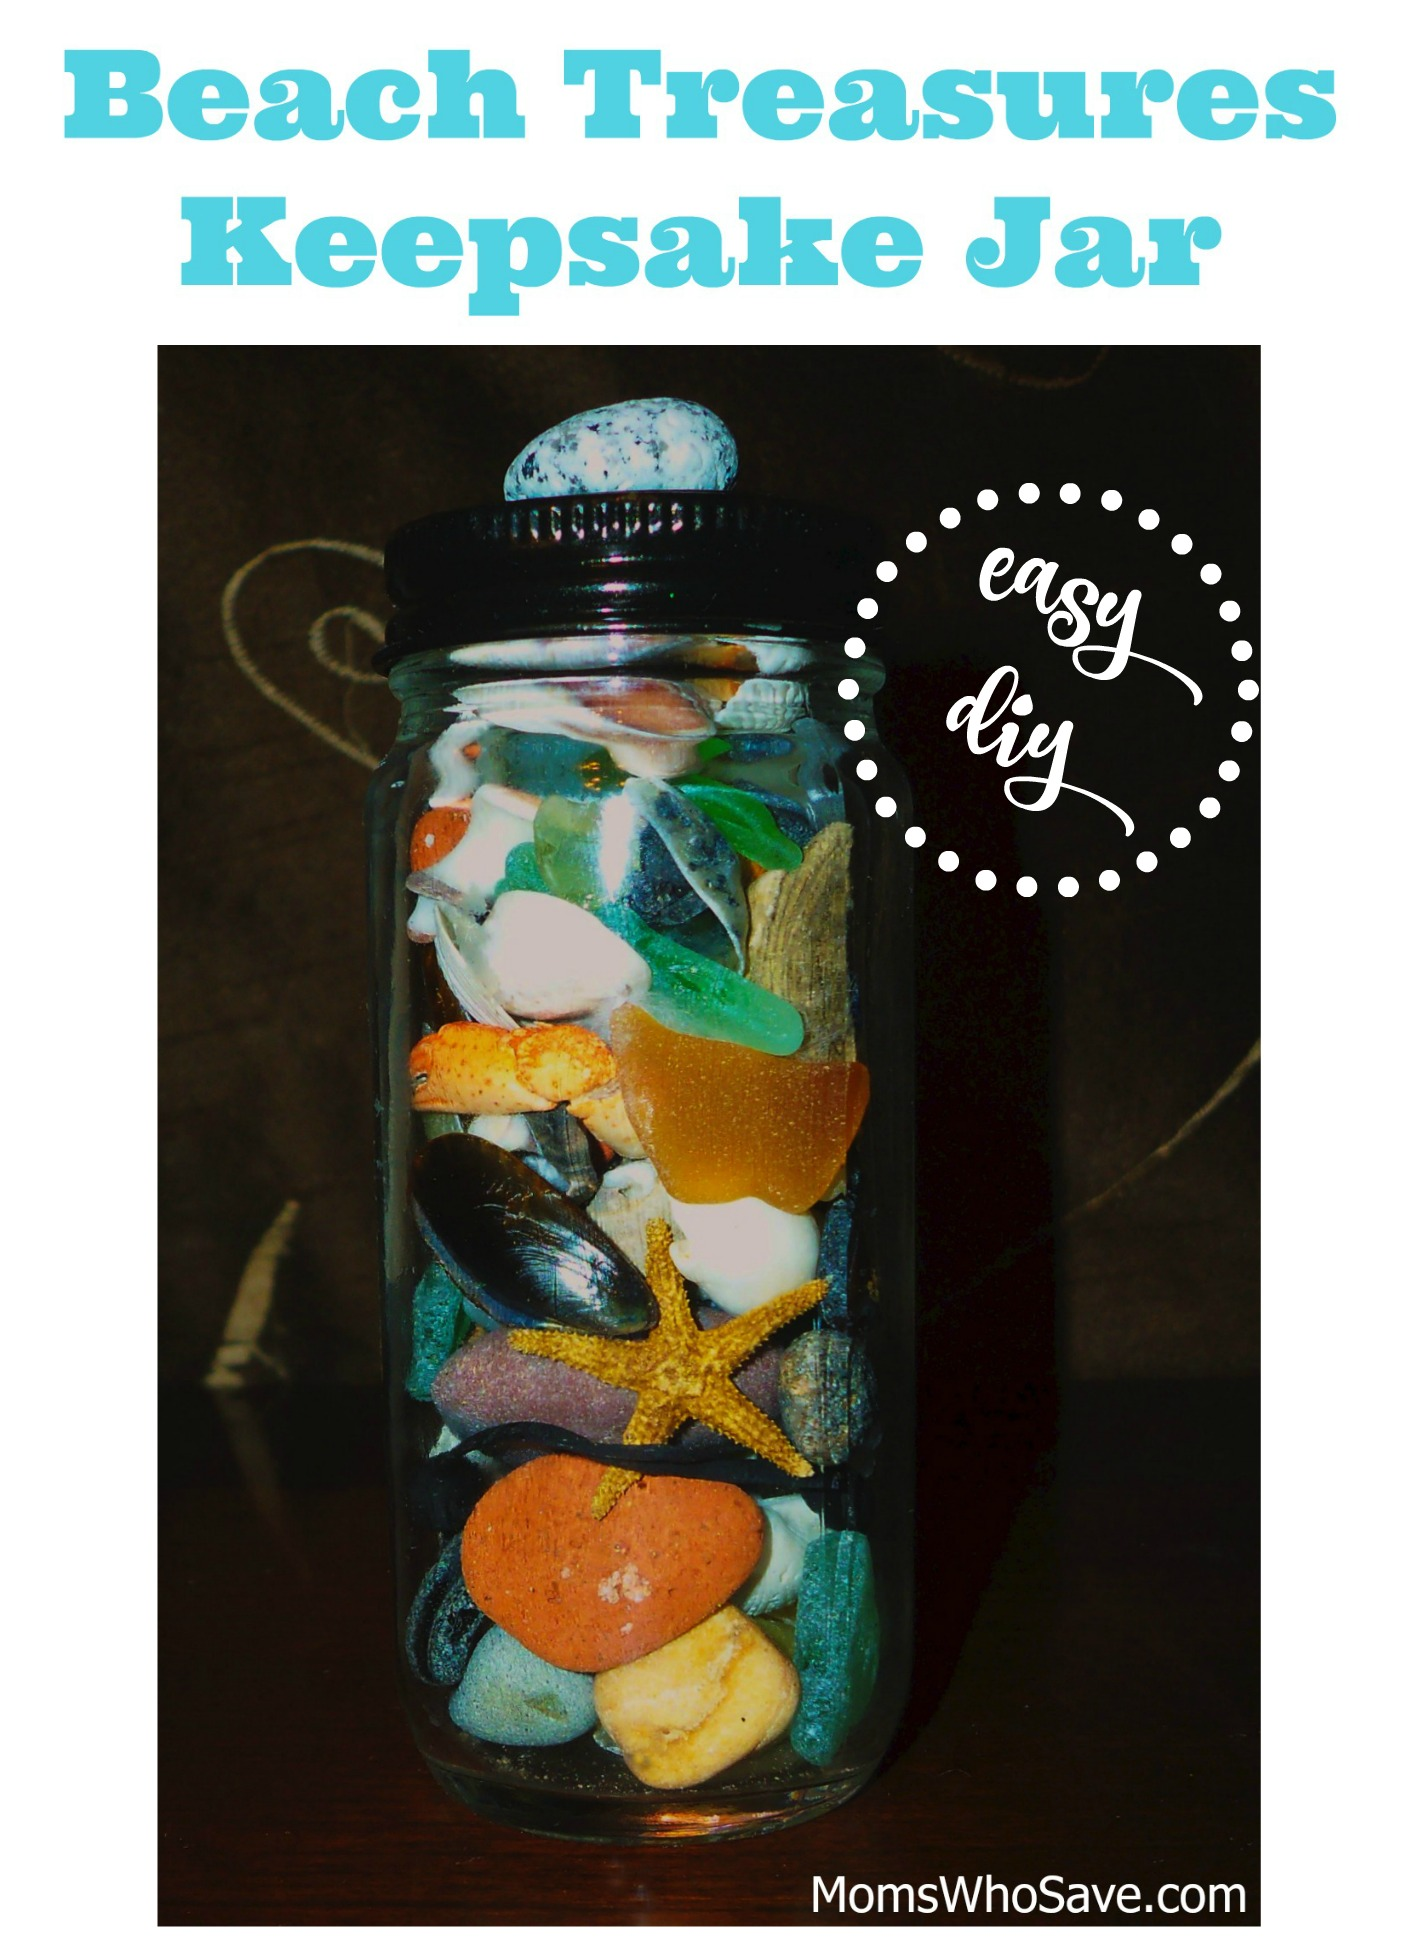 Beach Treasures Keepsake Jar — Easy DIY